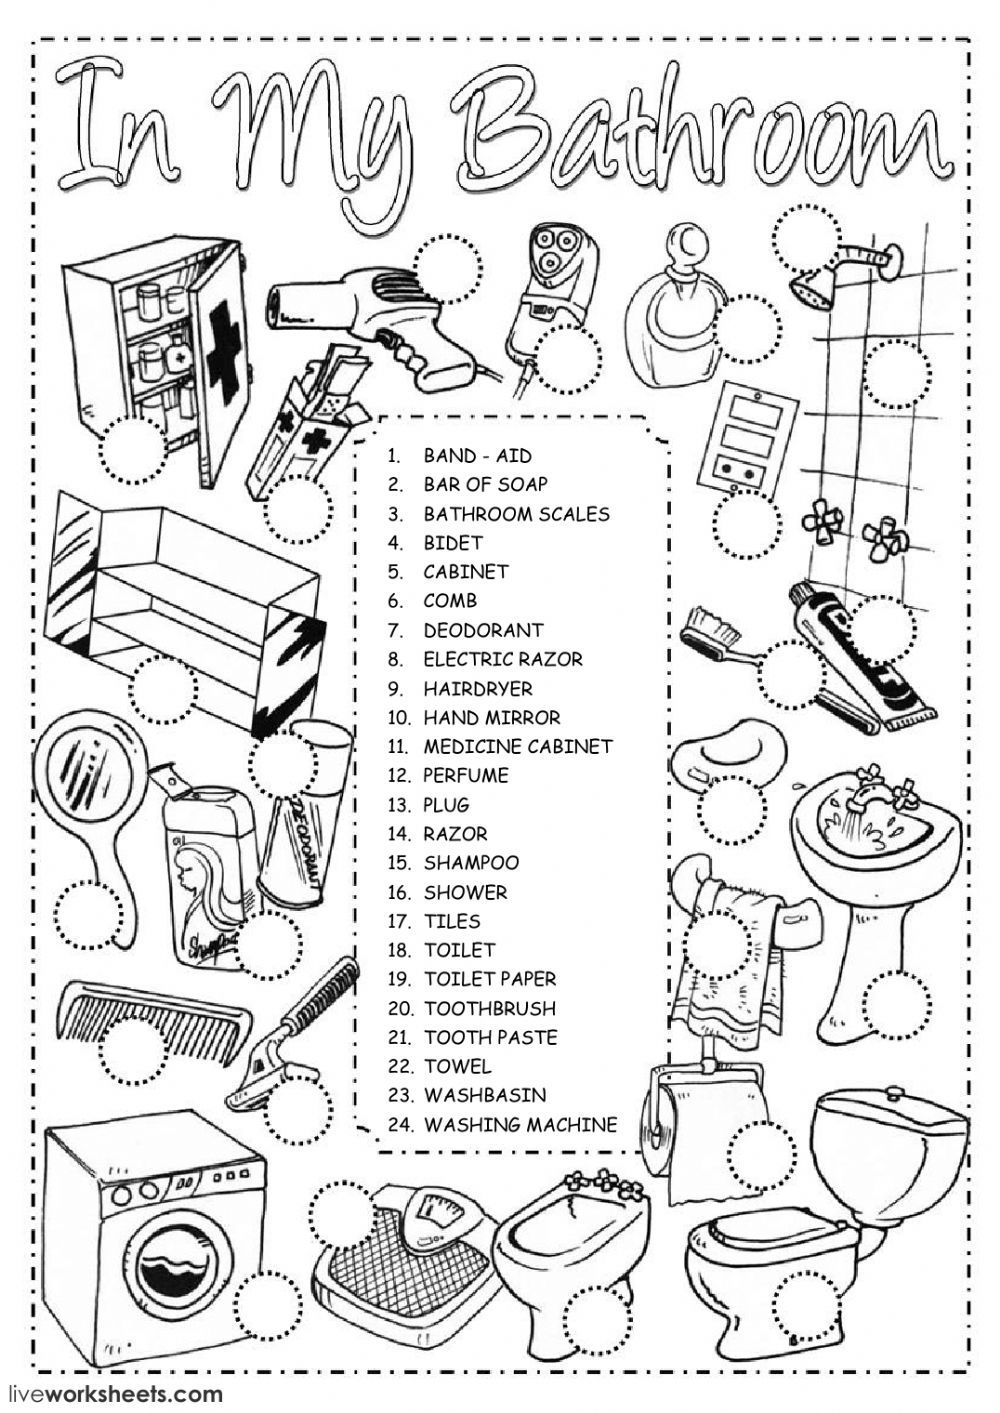 The house interactive and downloadable worksheet. You can